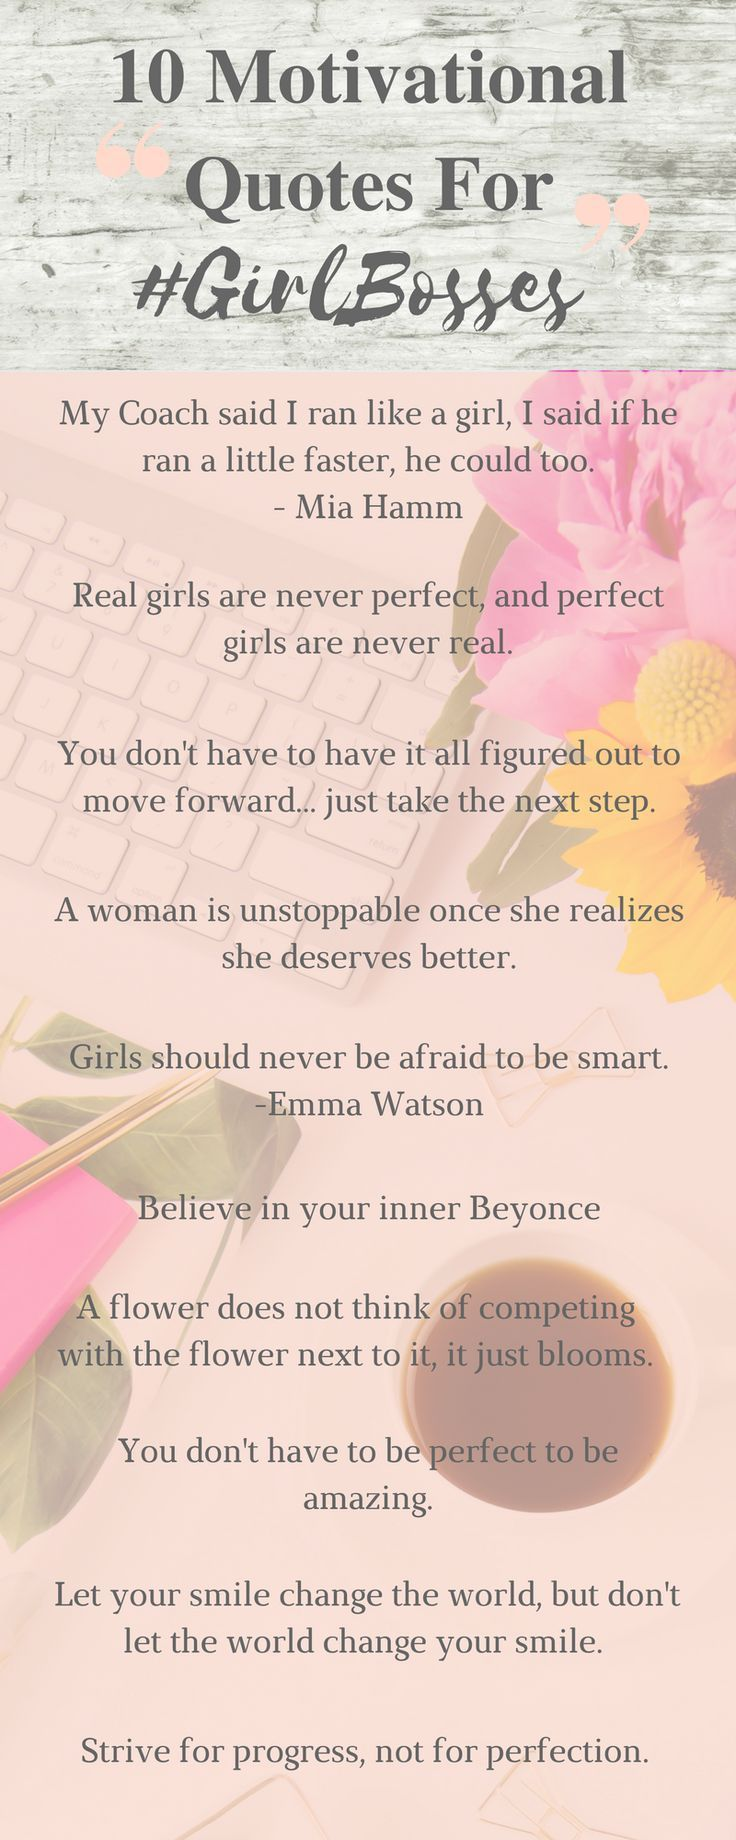 Inspiring Quotes For Teens 10 Motivational Quotes For #girlbosses  Pinterest  Inspirational .